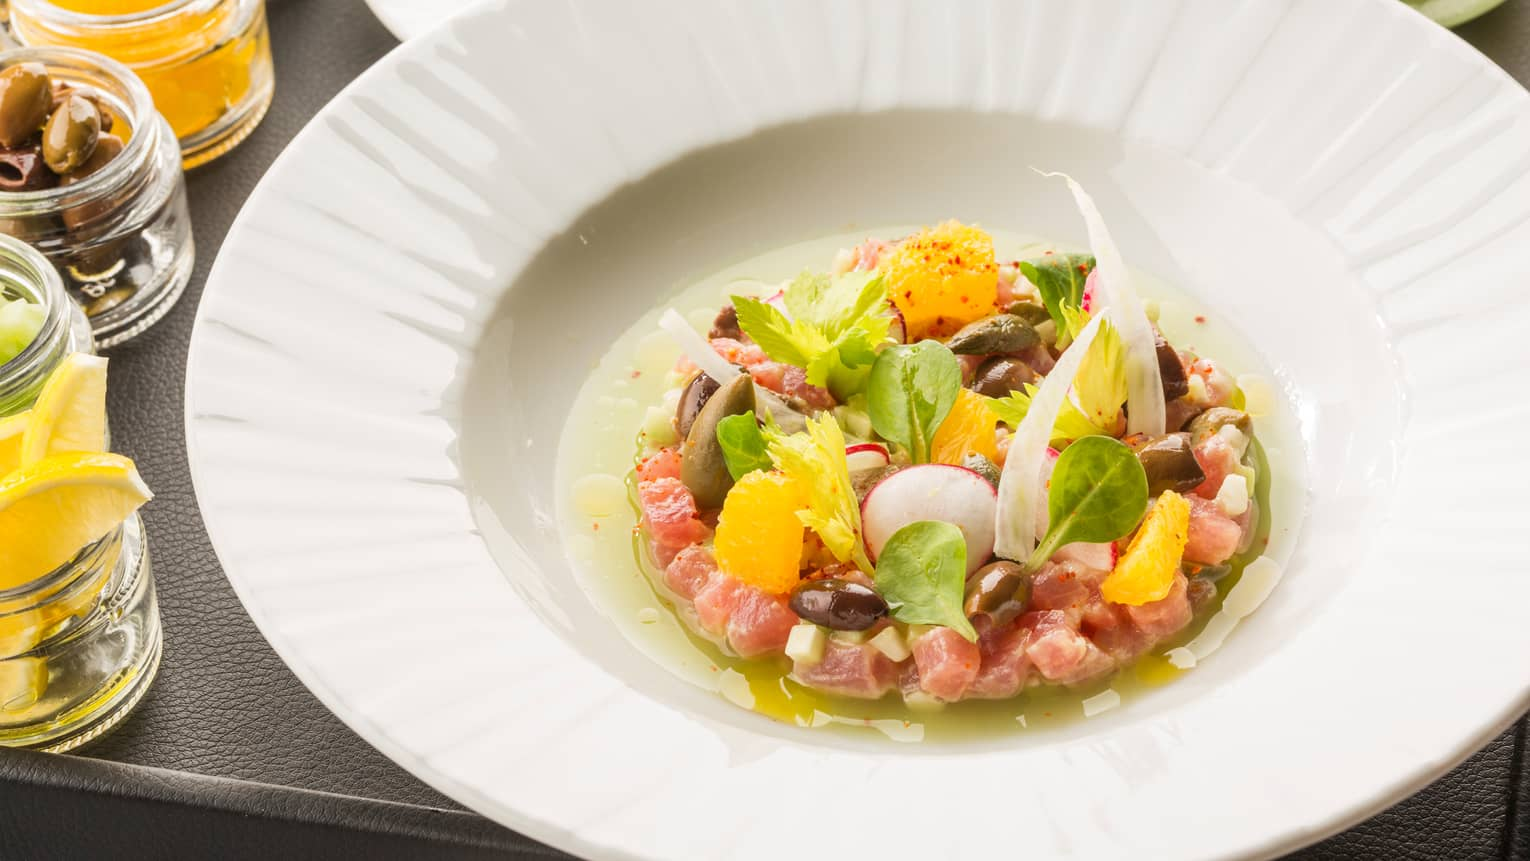 Tuna tartare salad with radish, orange slices in white bowl